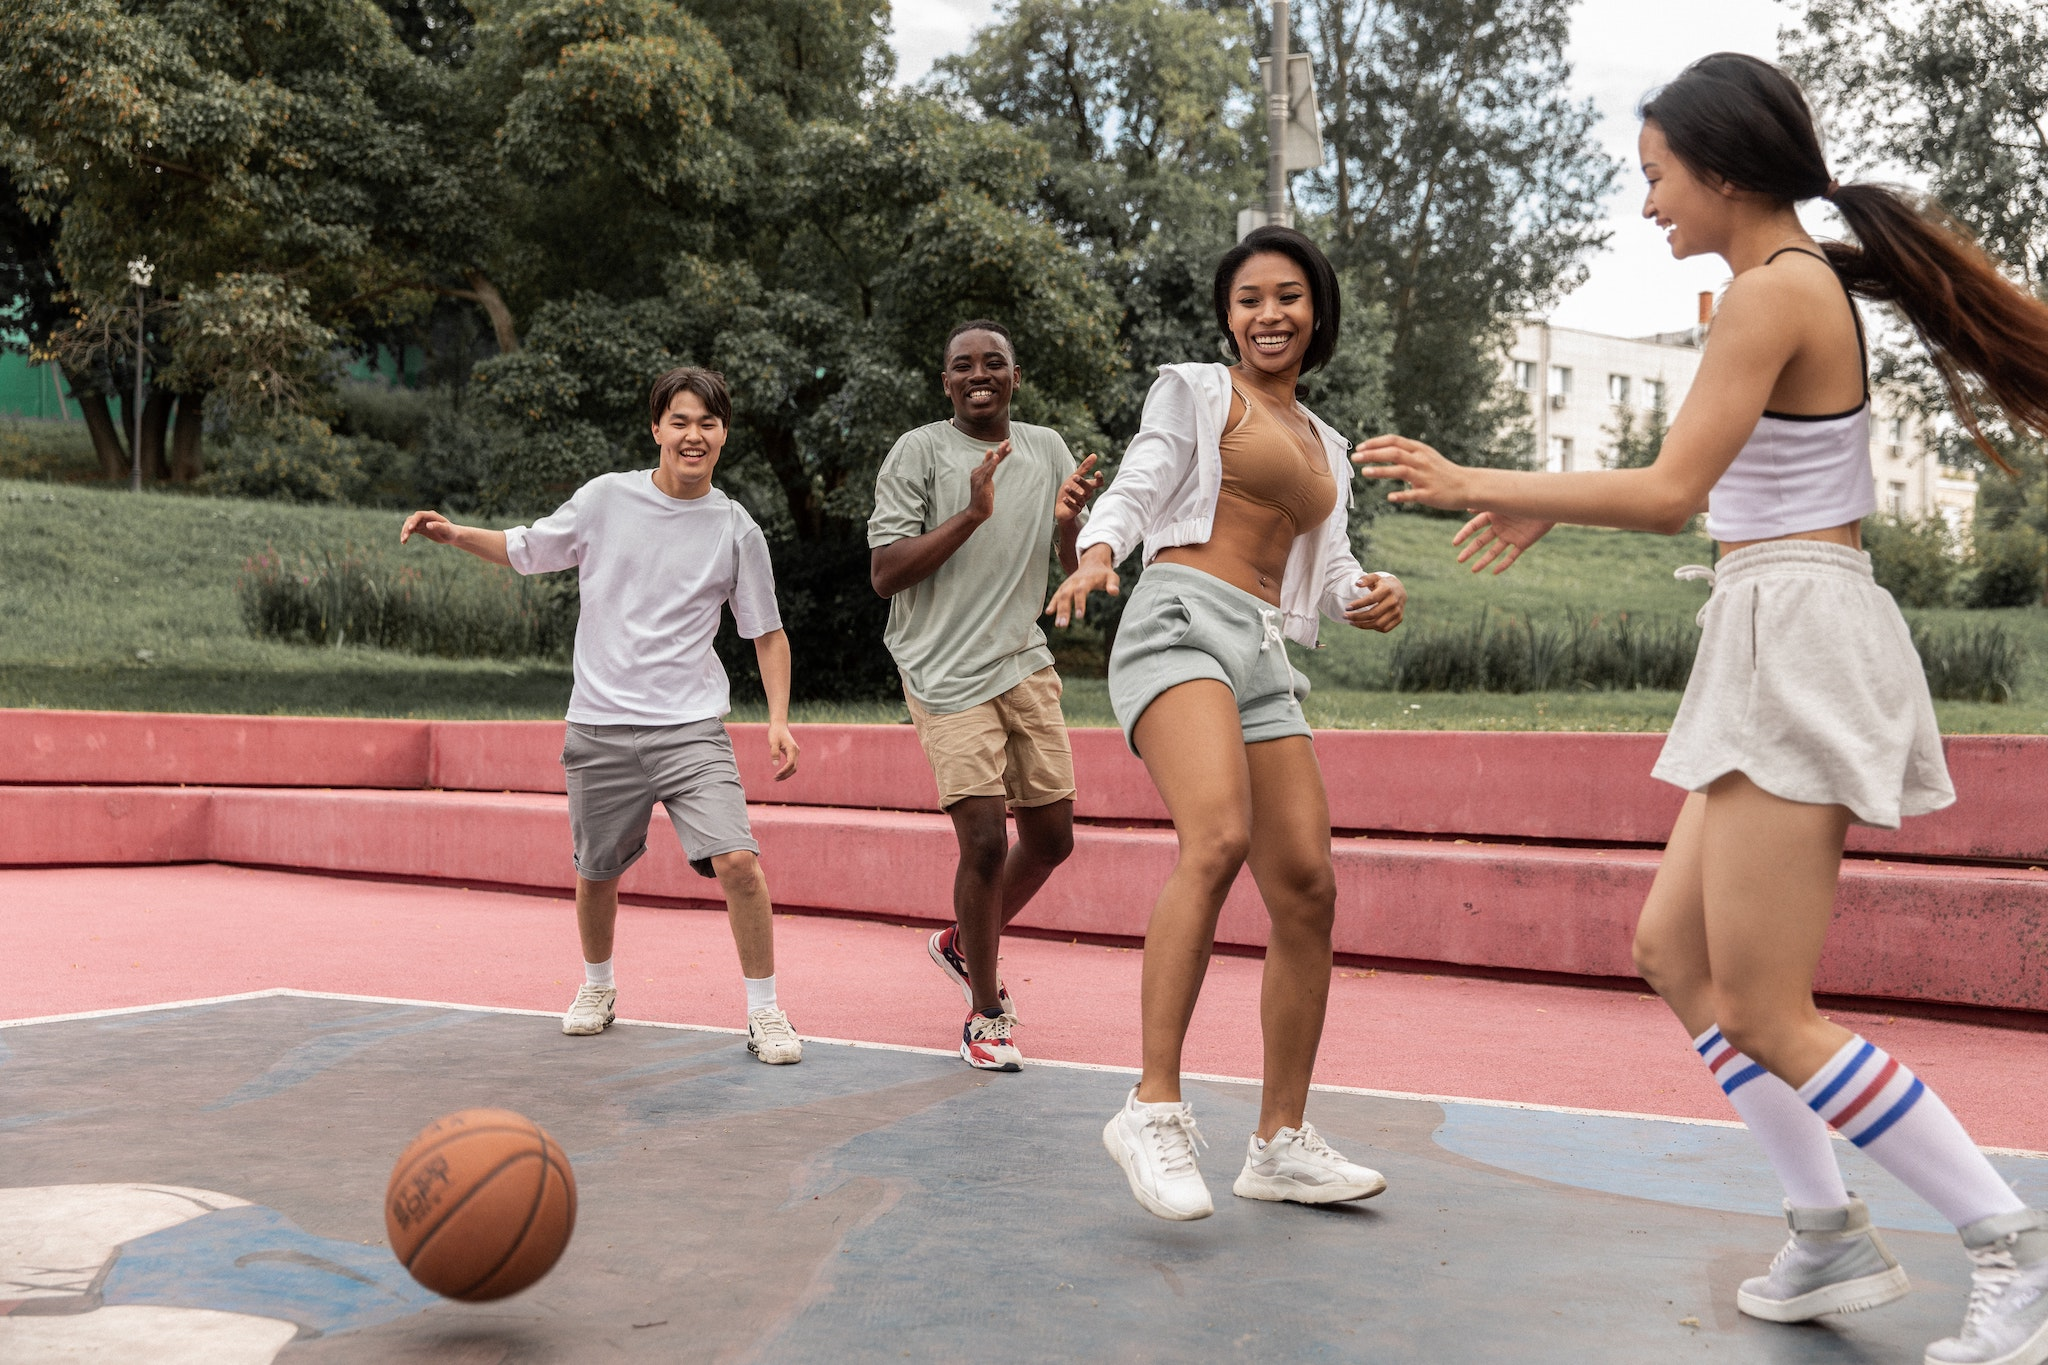 7 Amazing Team Building Games Your Team Won't Hate 🏀